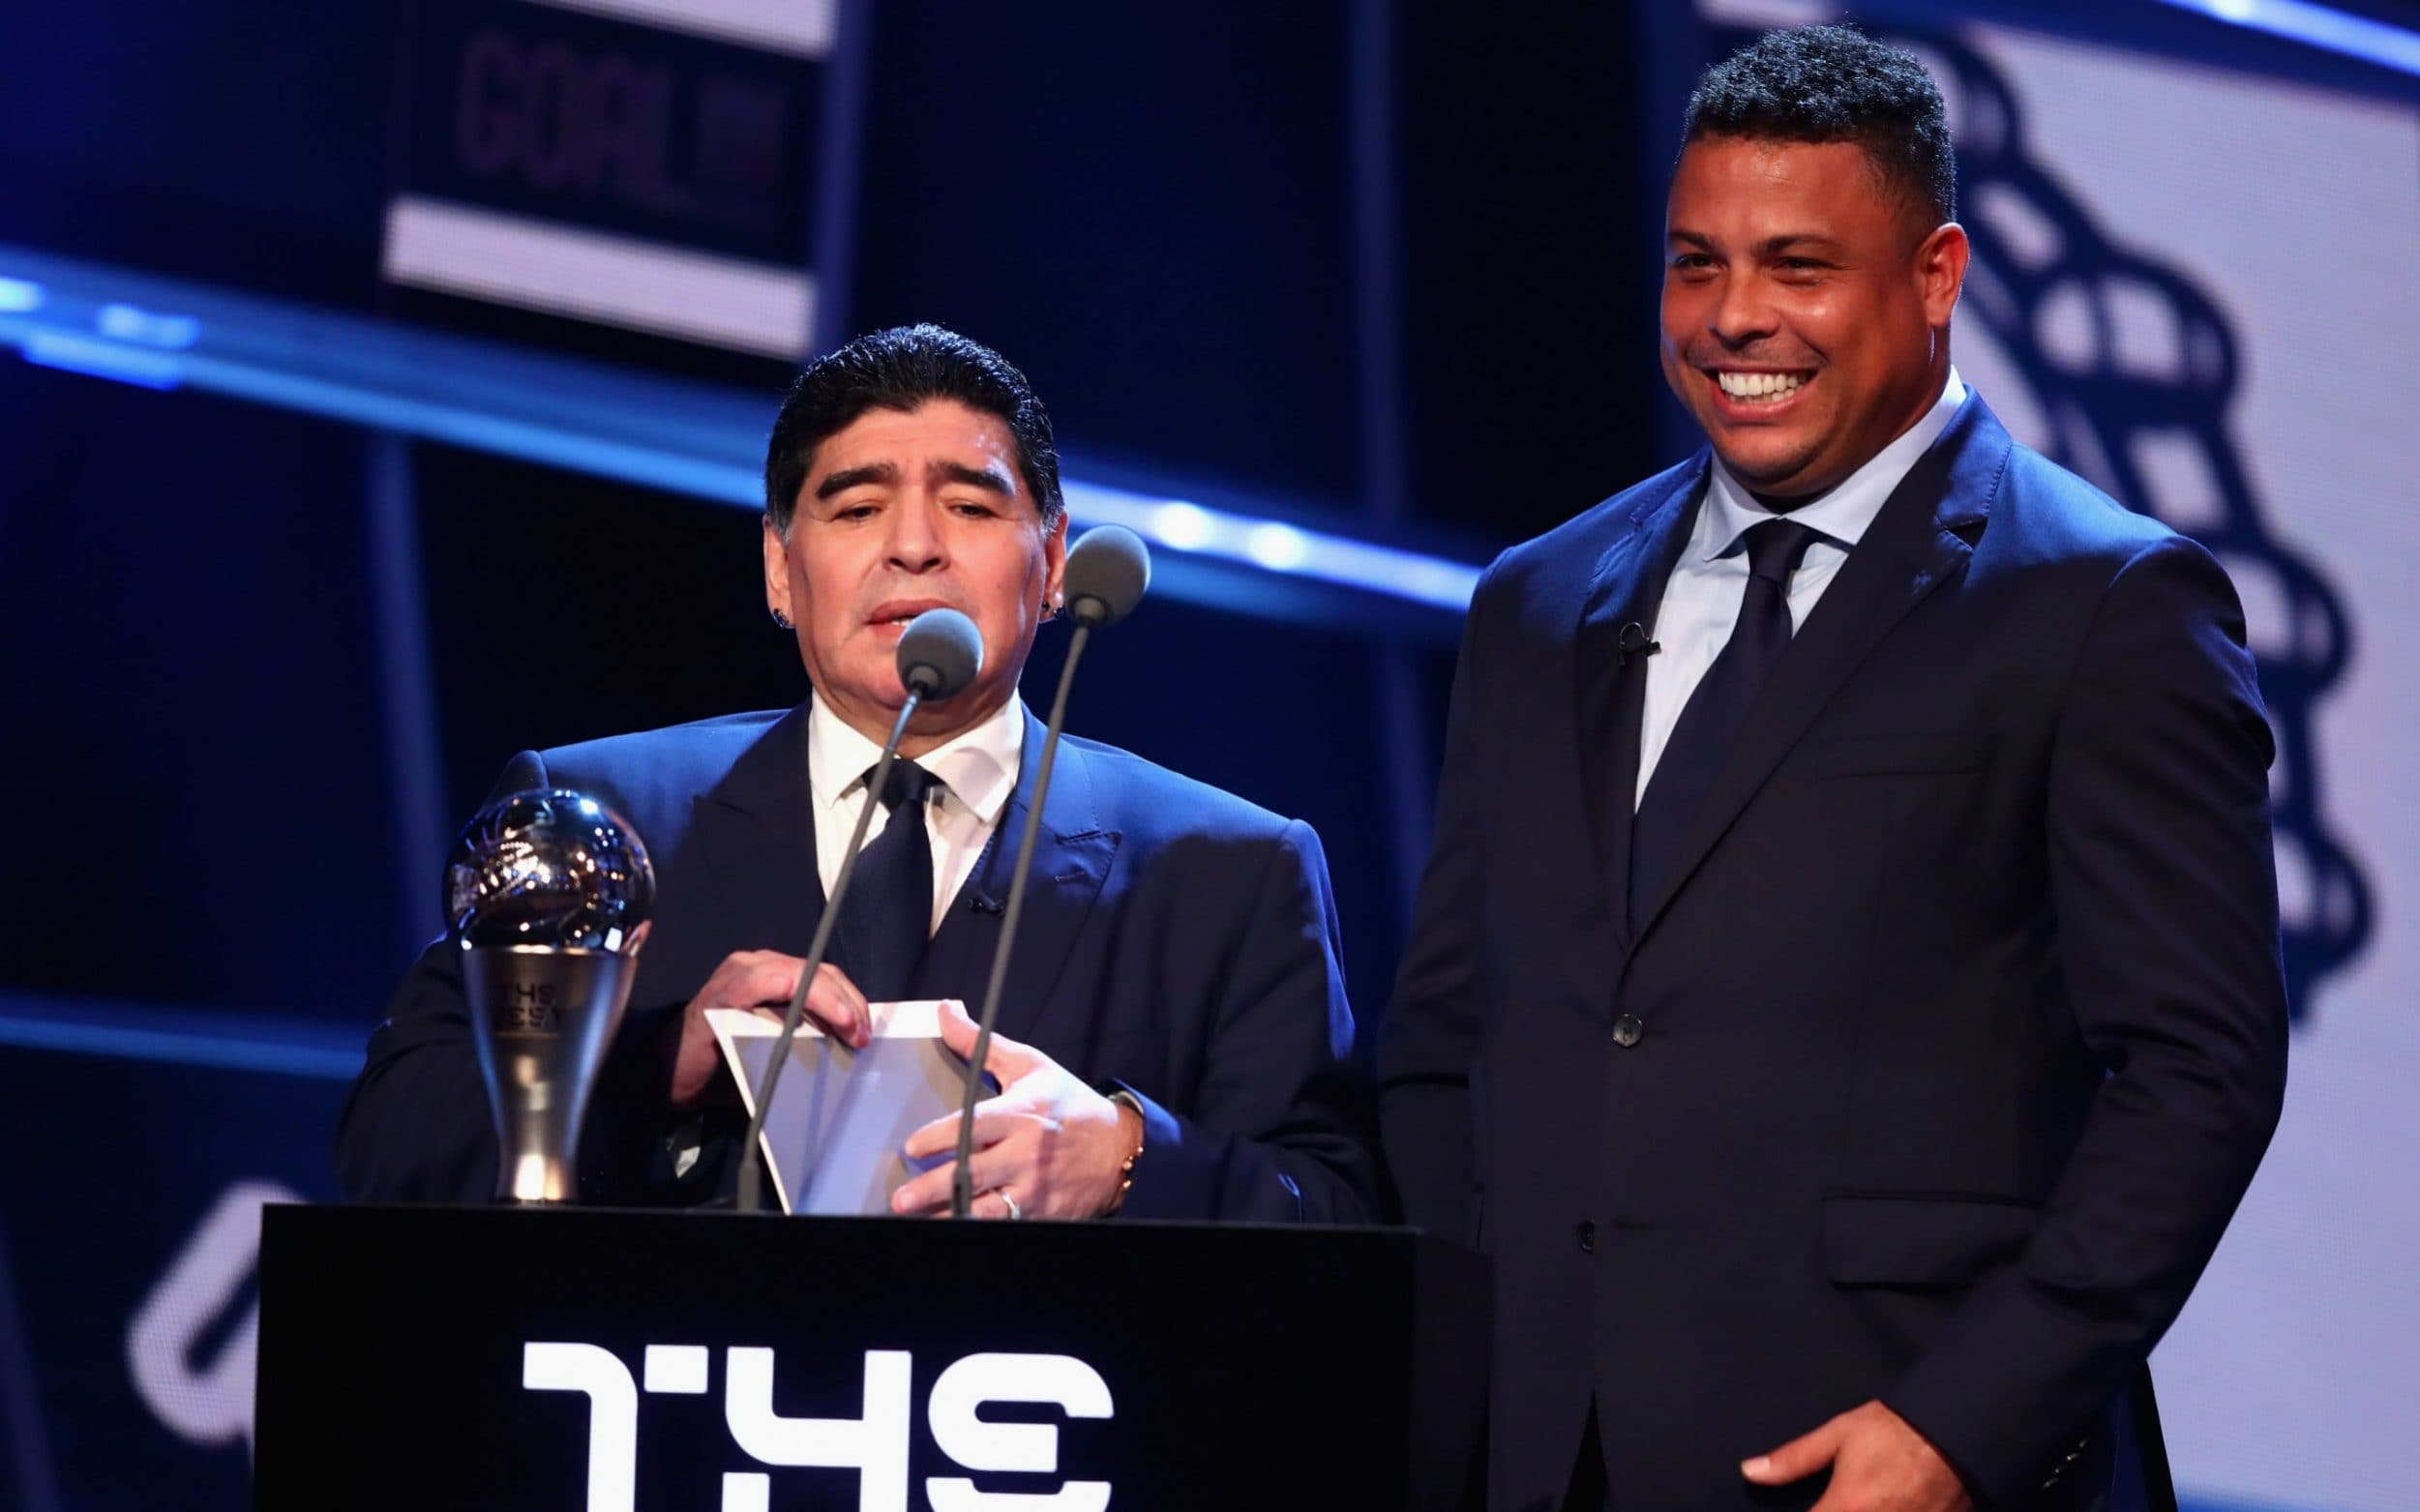 Idris Elba, Pele, Maradona ... More photos from the star studded FIFA Best Awards